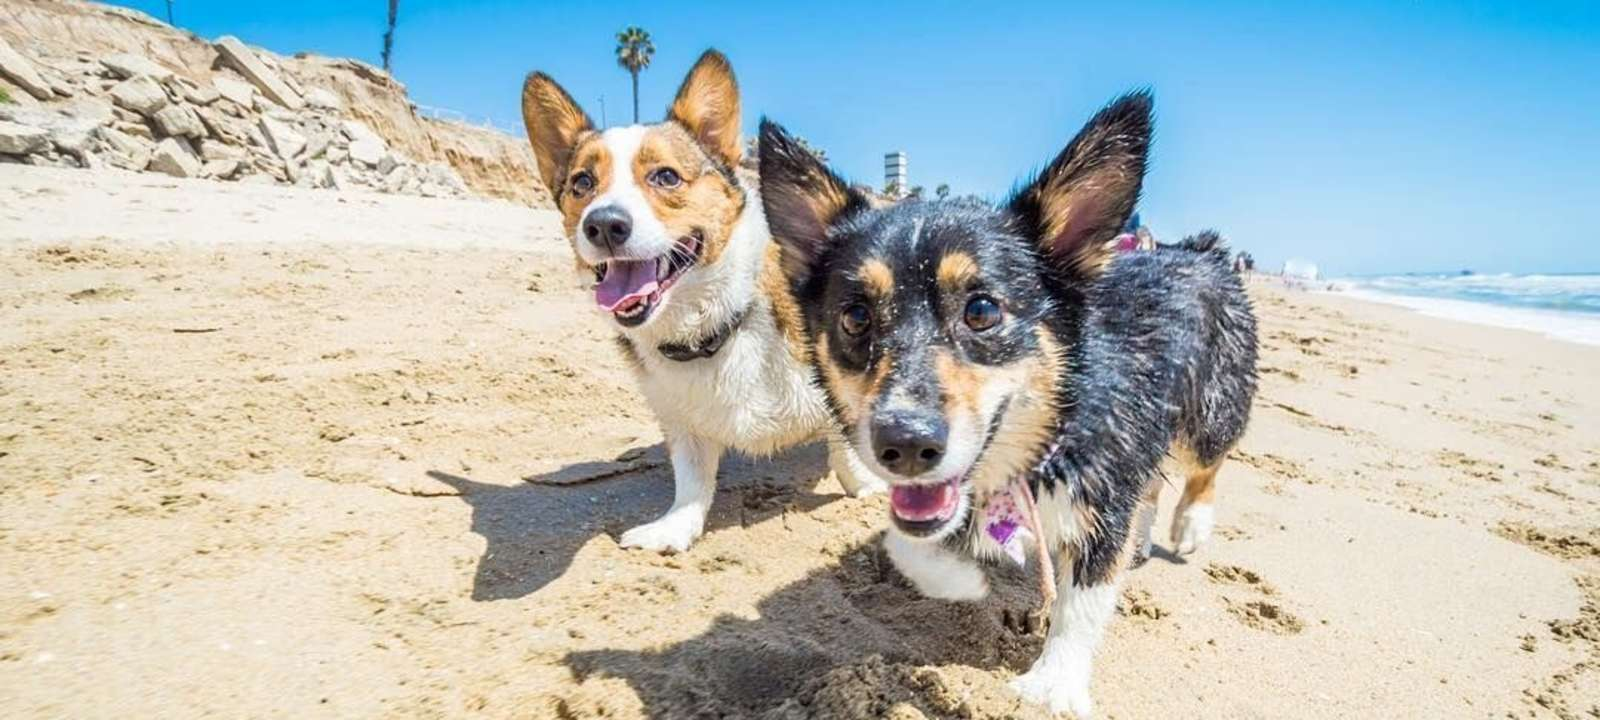 corgi beach day in huntington beach socal corgi party